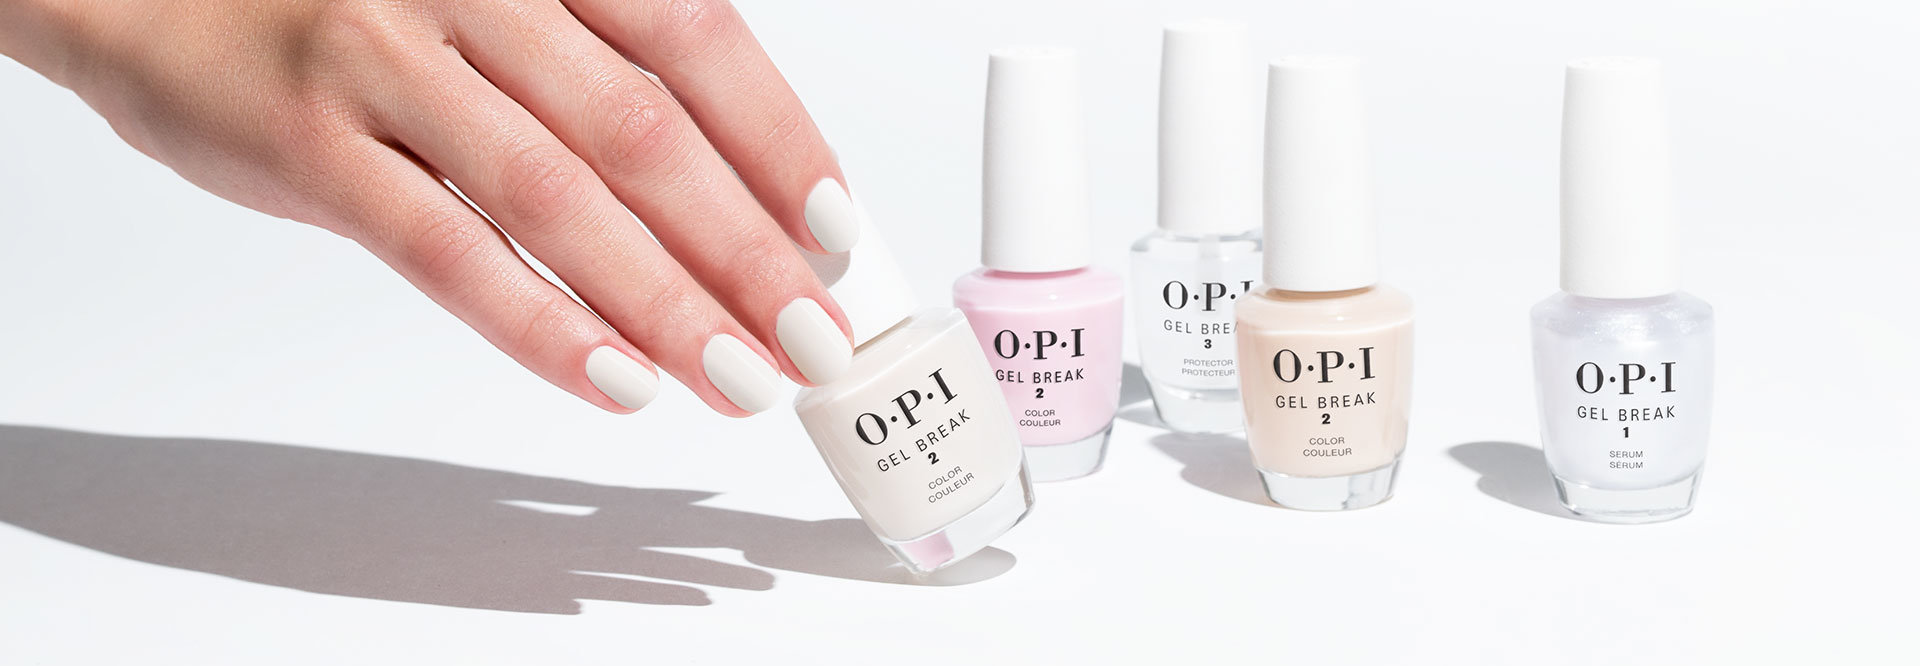 Nail treatments strengtheners opi nail treatments strengtheners solutioingenieria Images